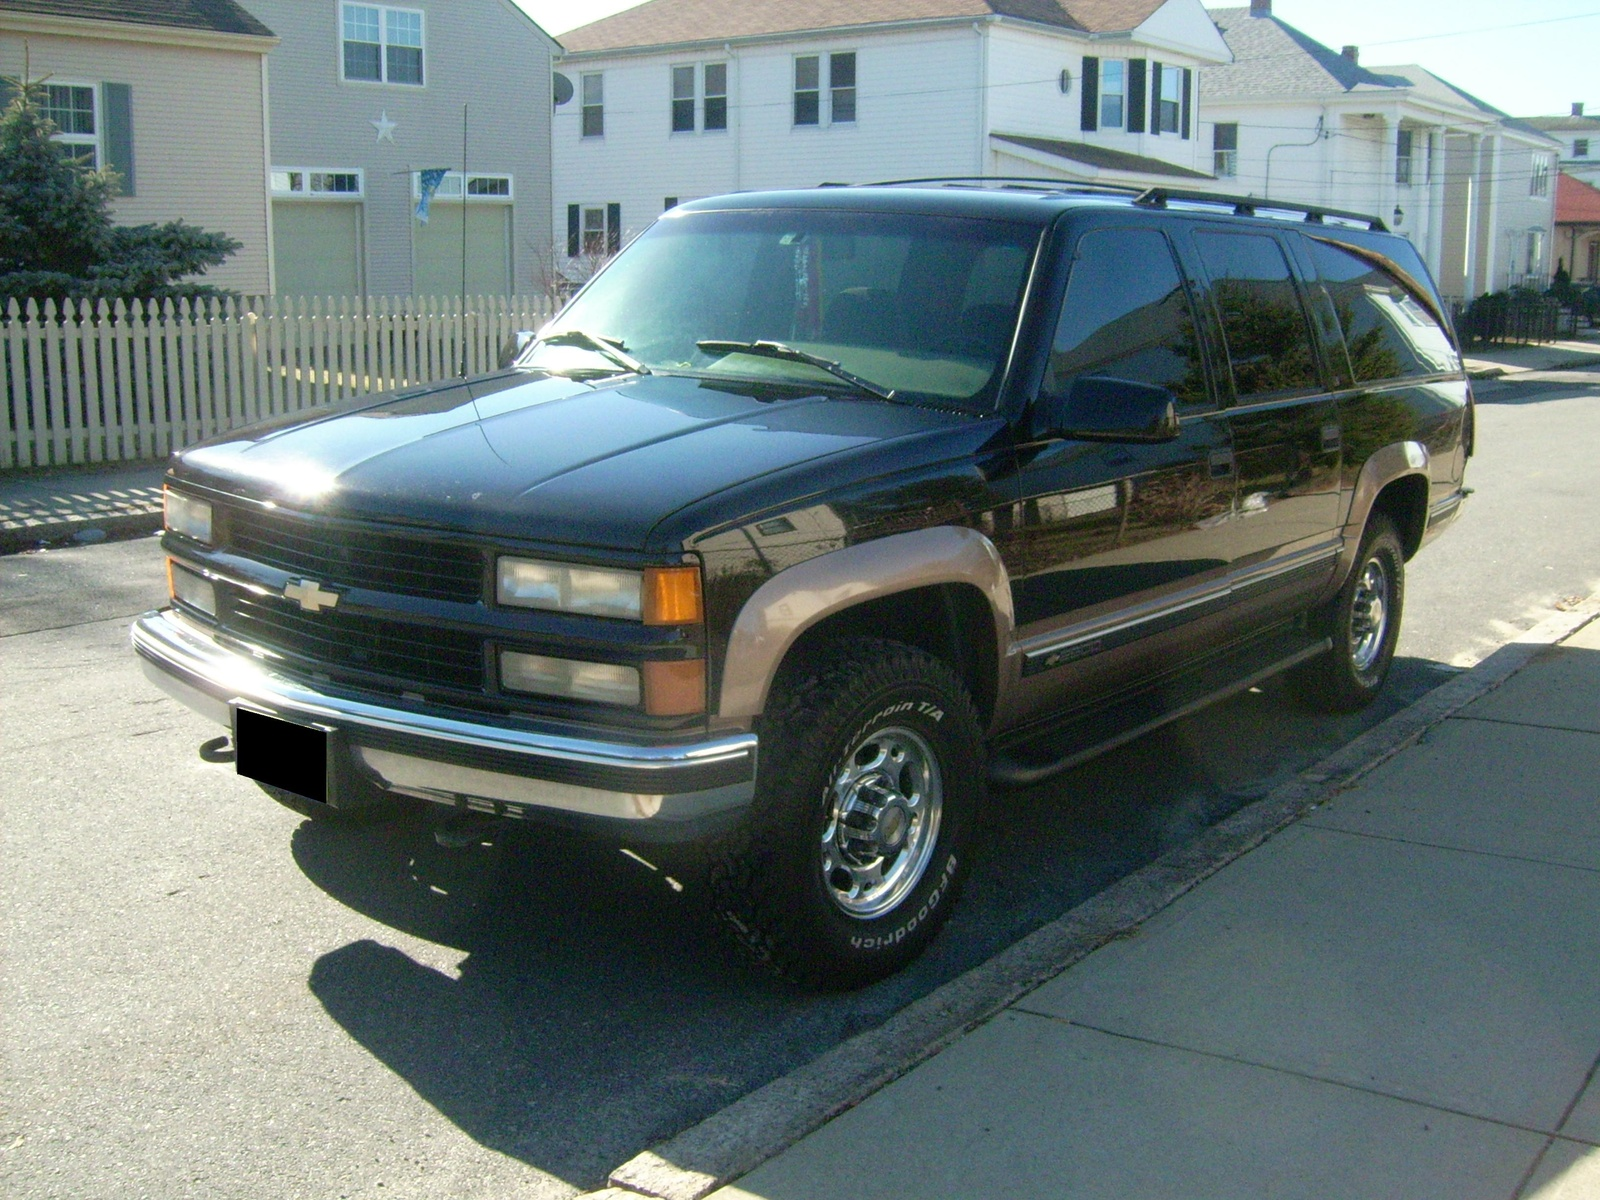 1996 Chevrolet Suburban 4 Dr K2500 4WD SUV picture, exterior